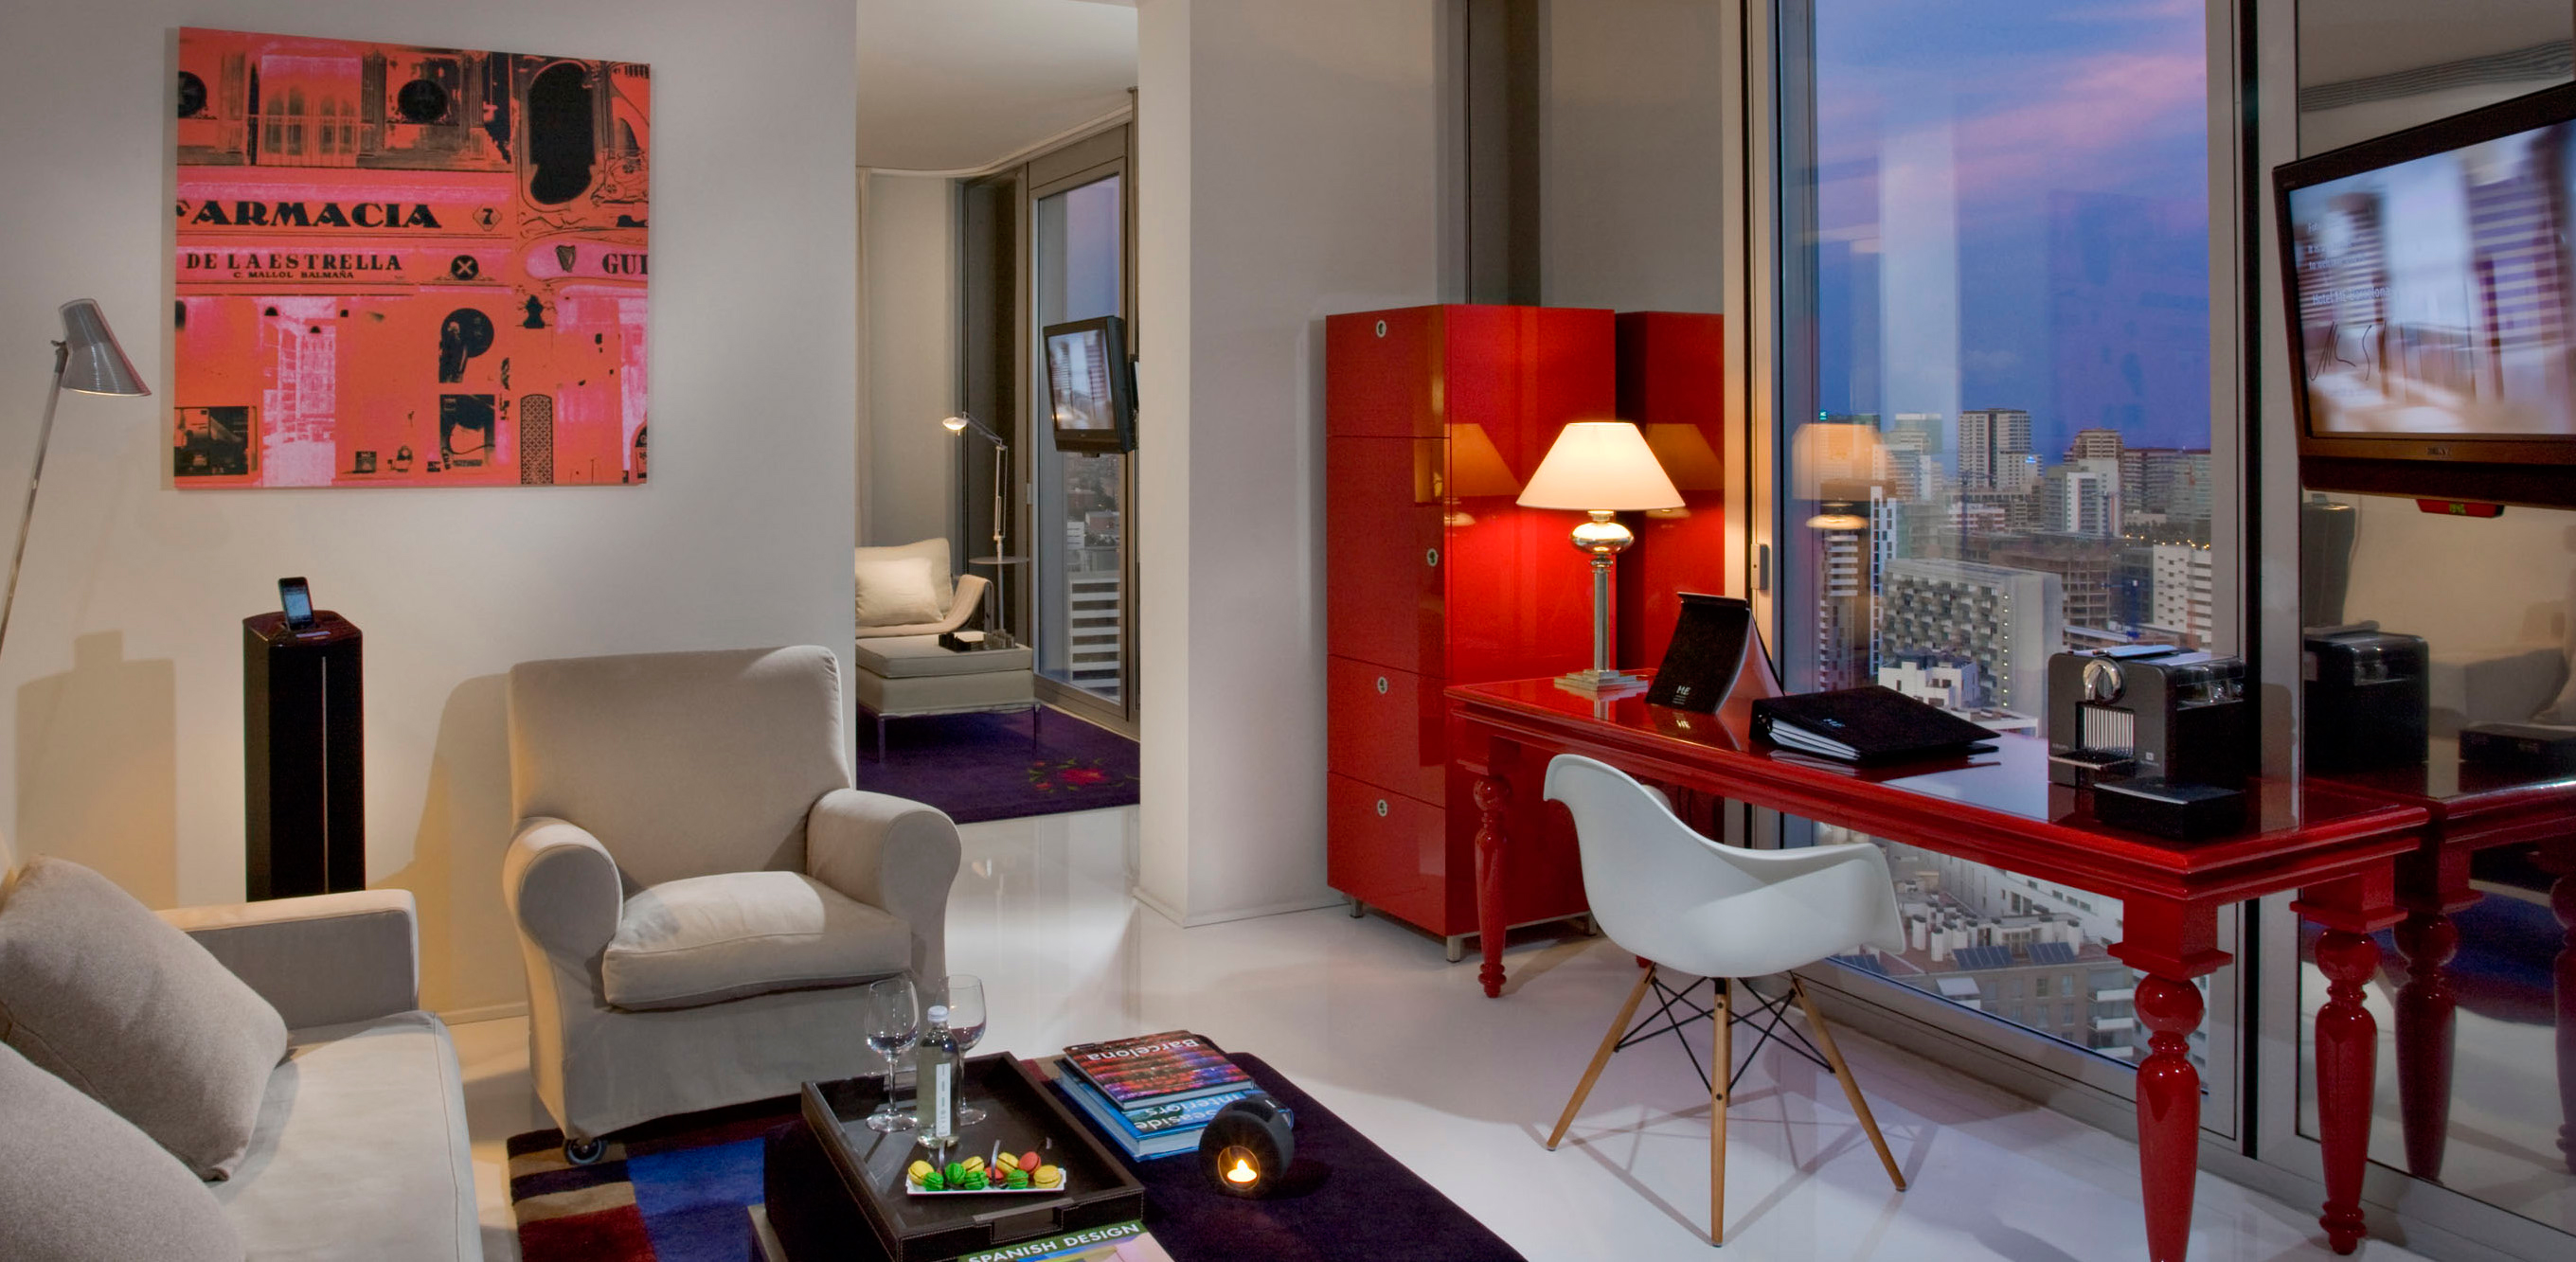 Me barcelona one of the best design hotels in sant marti for Top design hotels barcelona